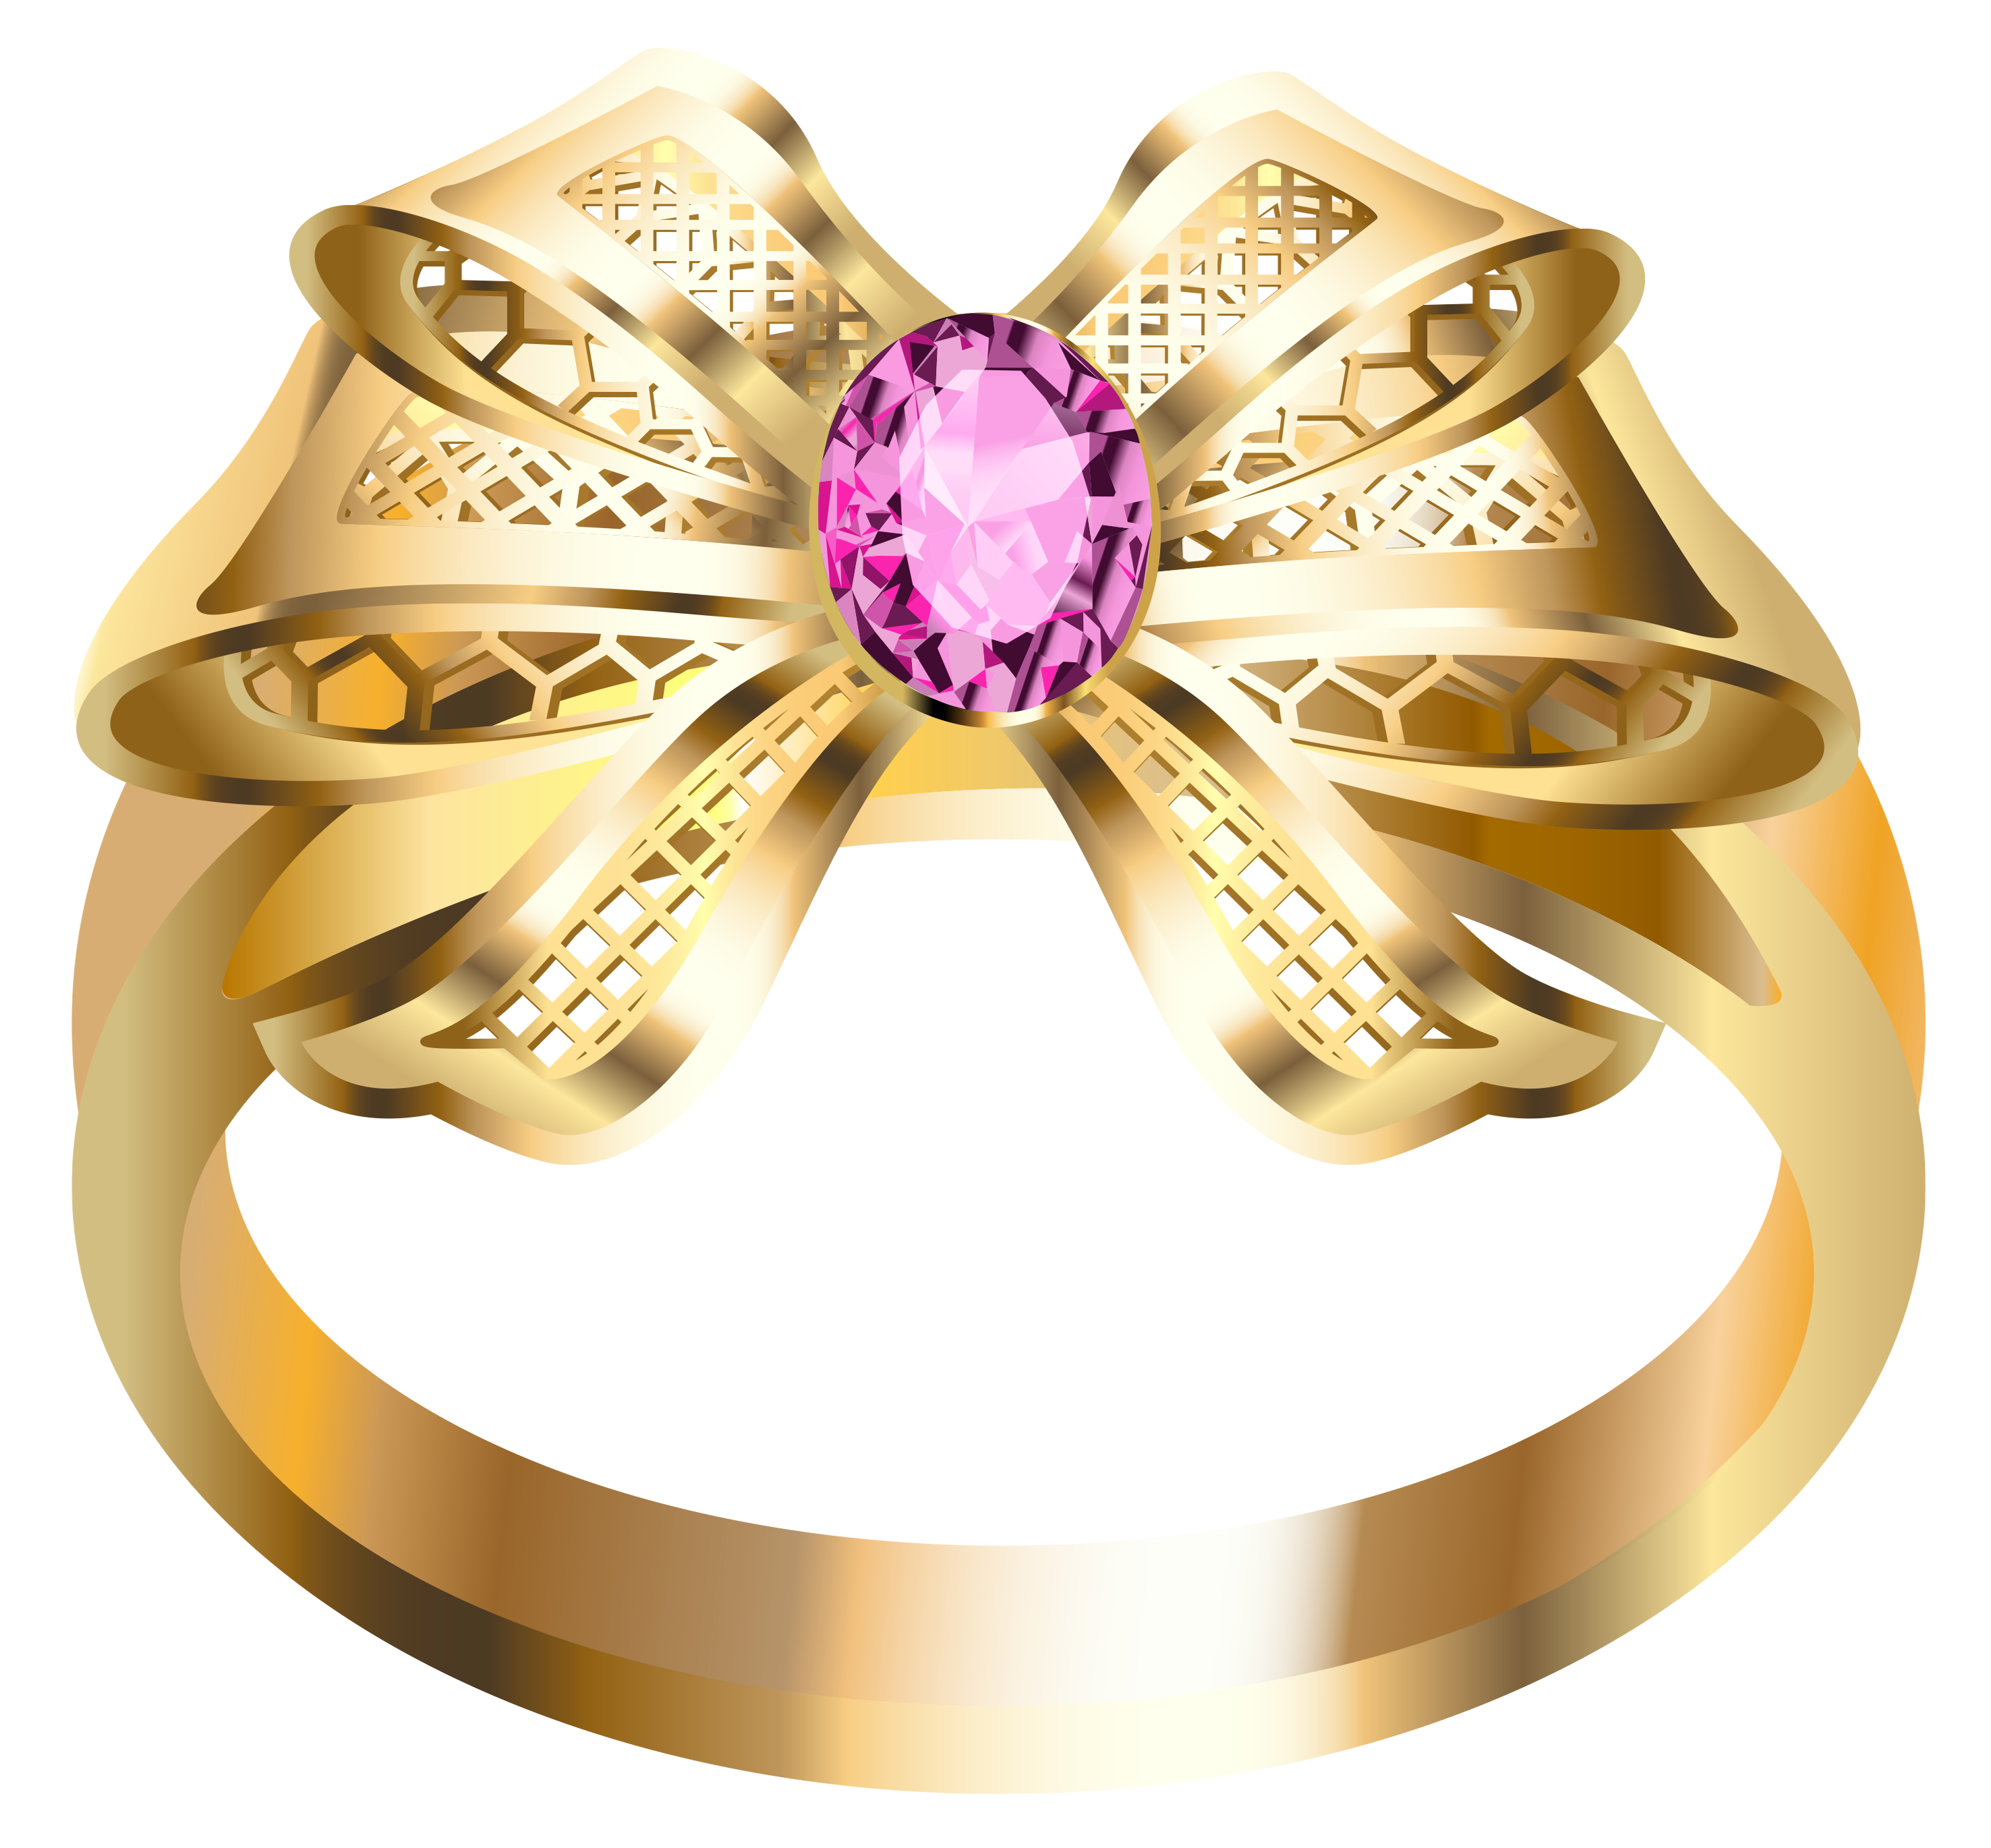 Gold diamond png. Ring with diamonds image